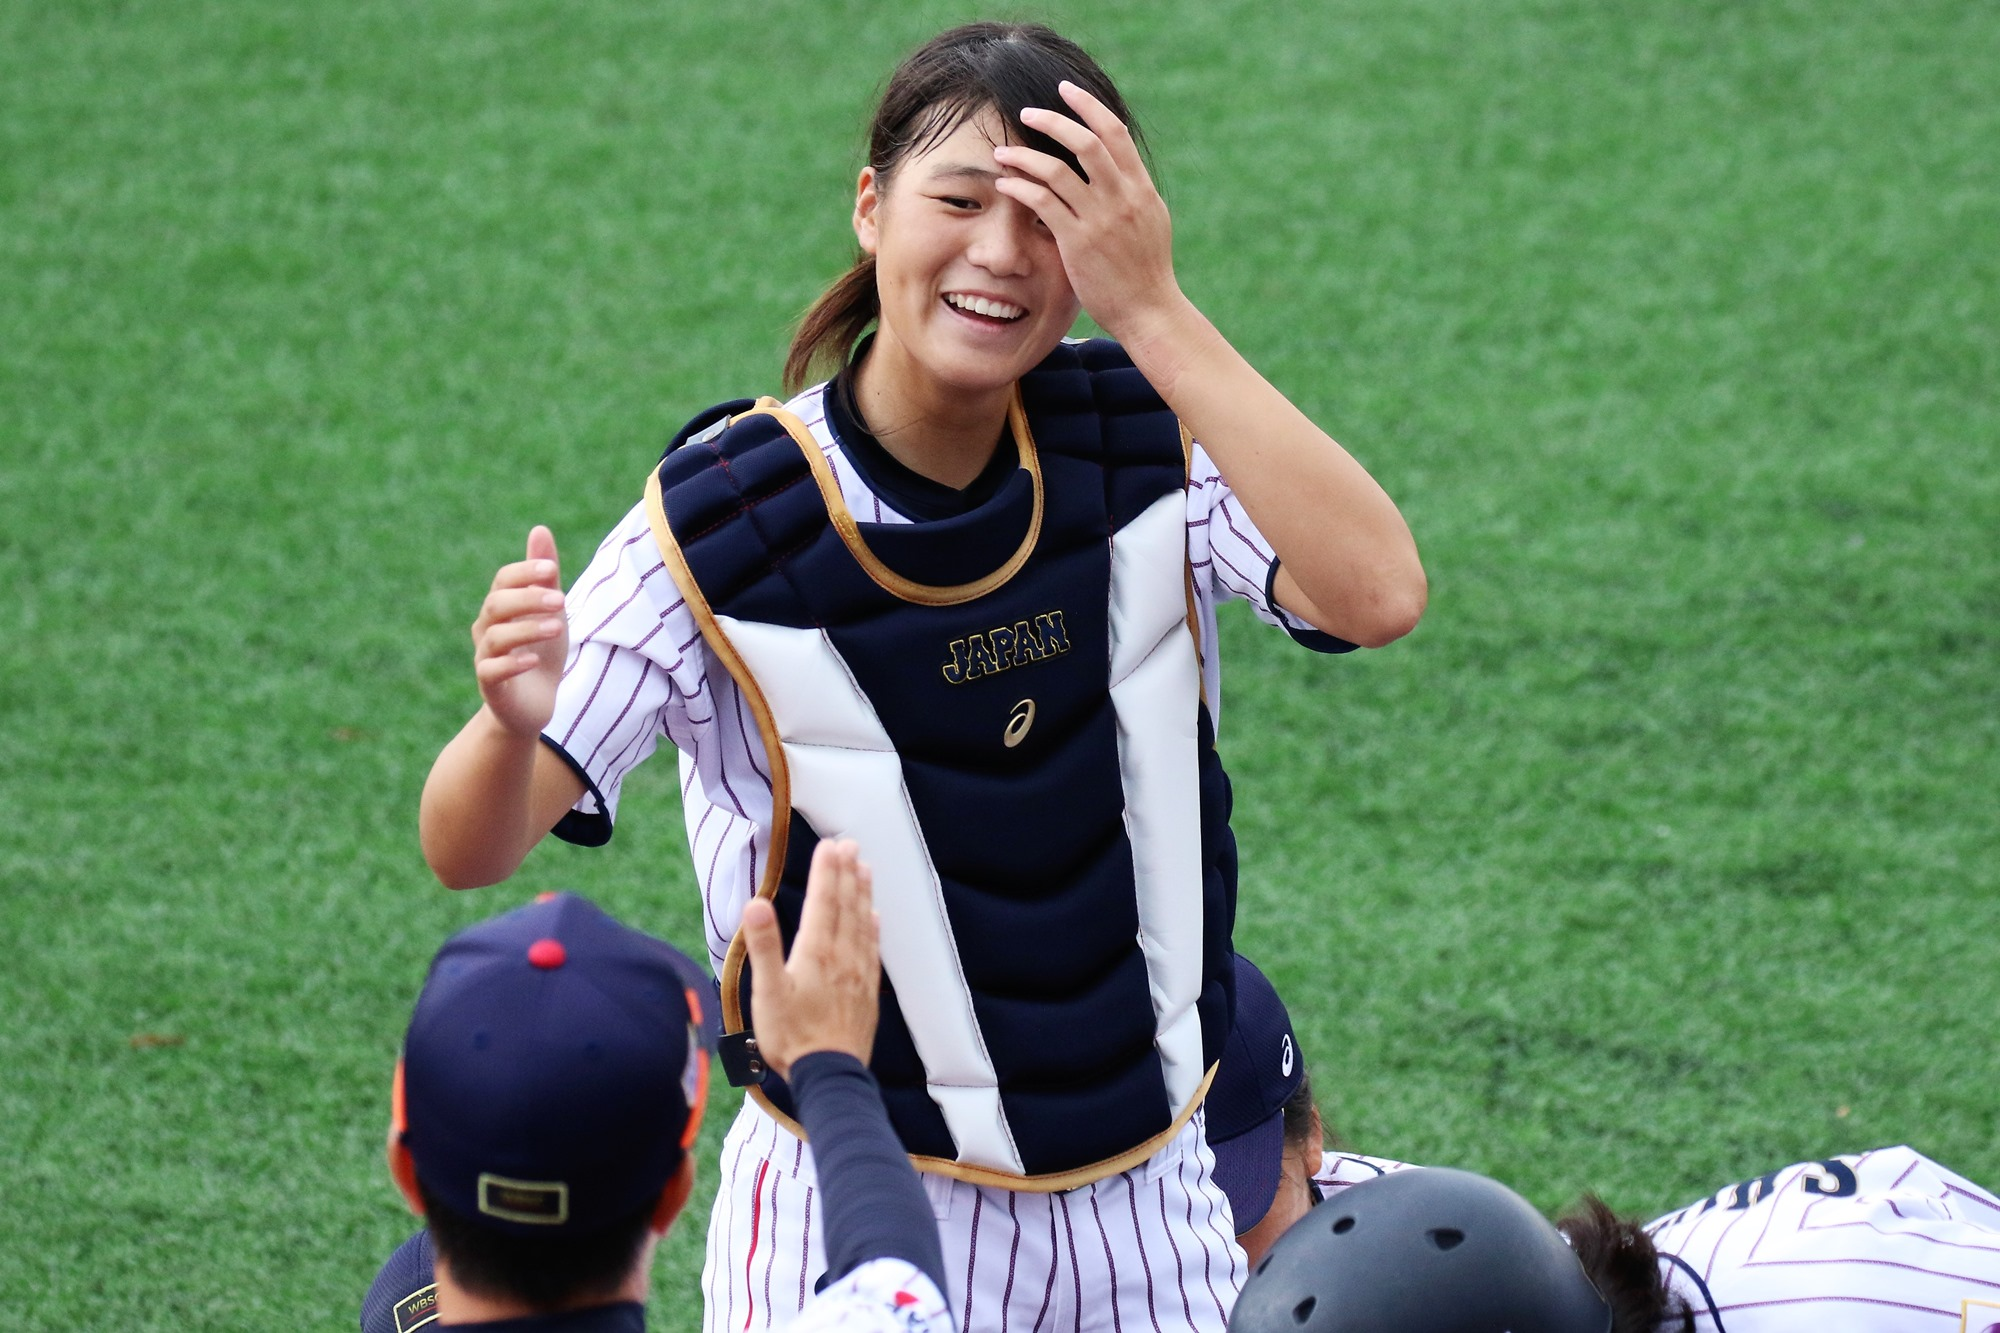 Ririka Tabata took over catching duties